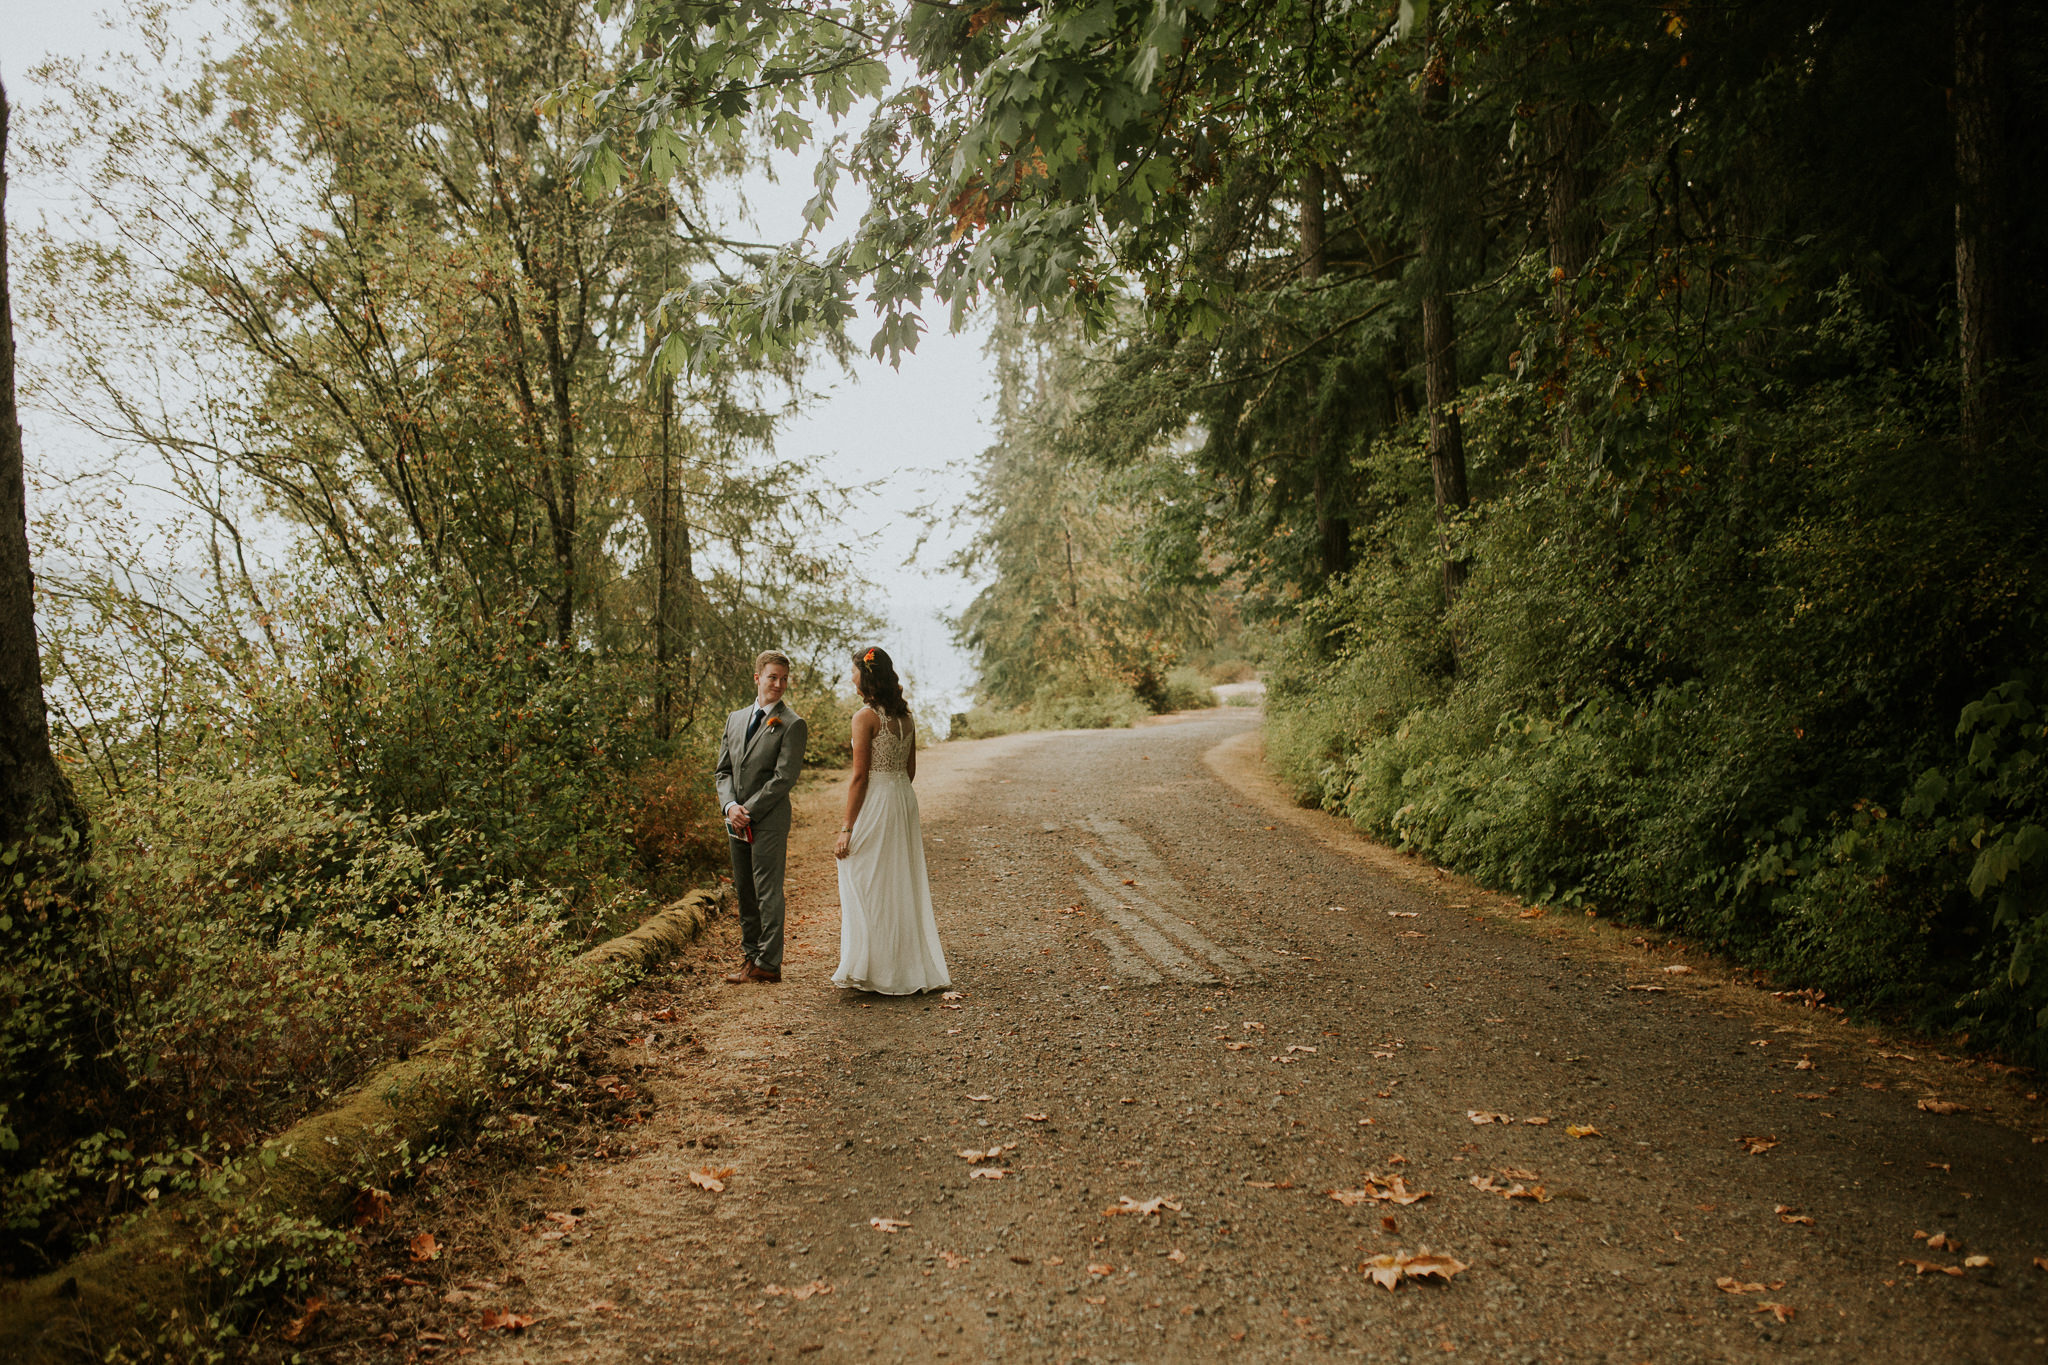 Port-Orchard-Manchester-Park-elopement-Bride-And-Groom-8.jpg